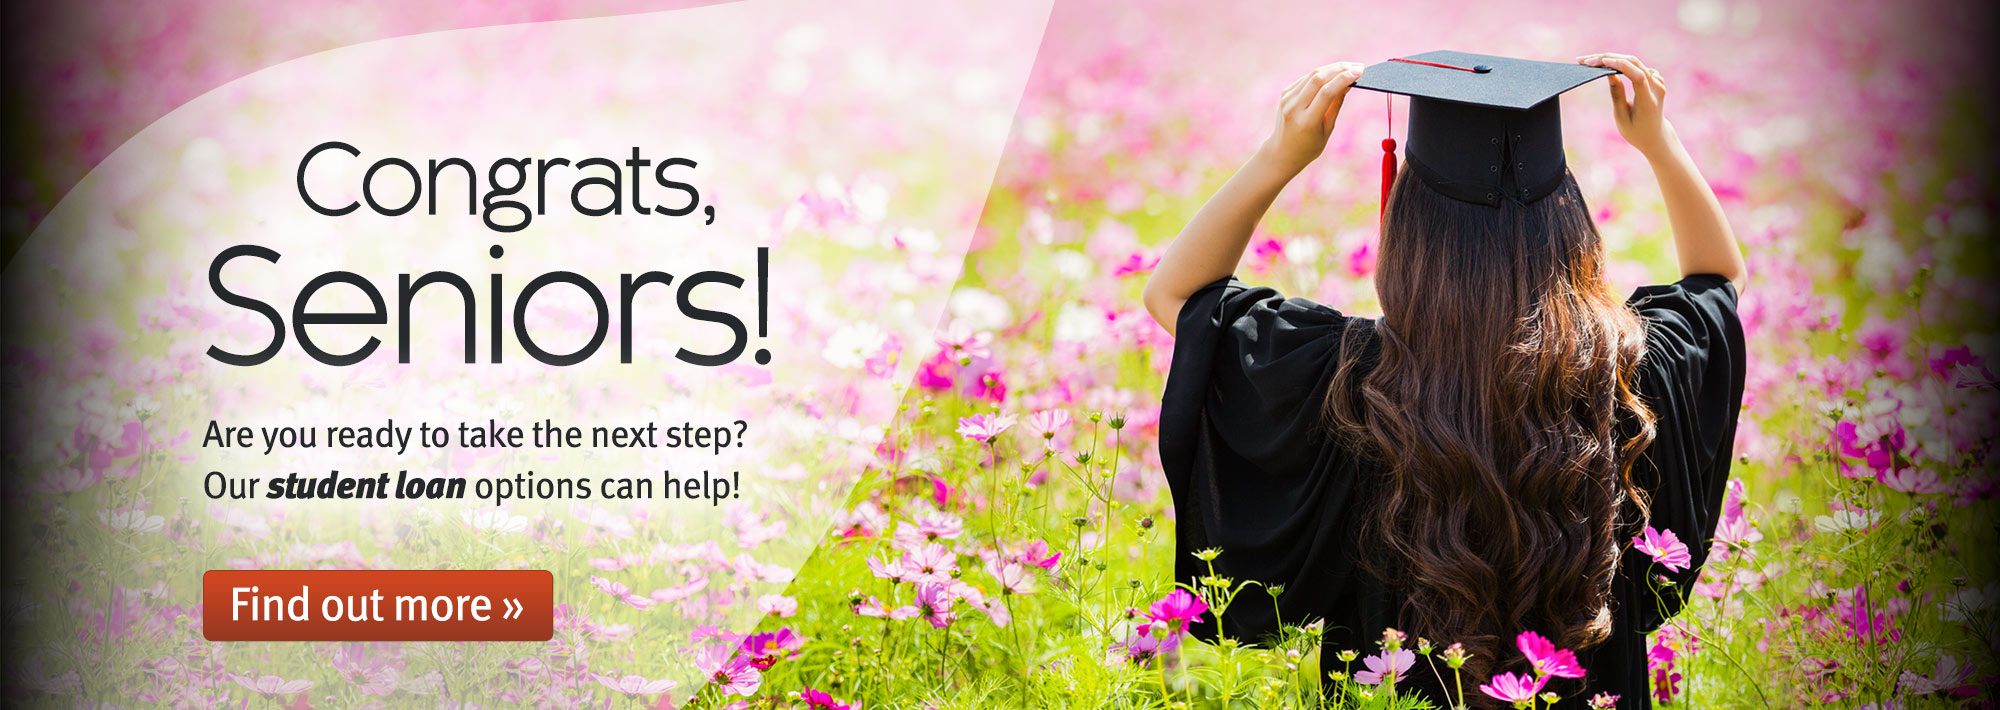 Congrats, Seniors! Are you ready to take the next step? Our student loan options can help!